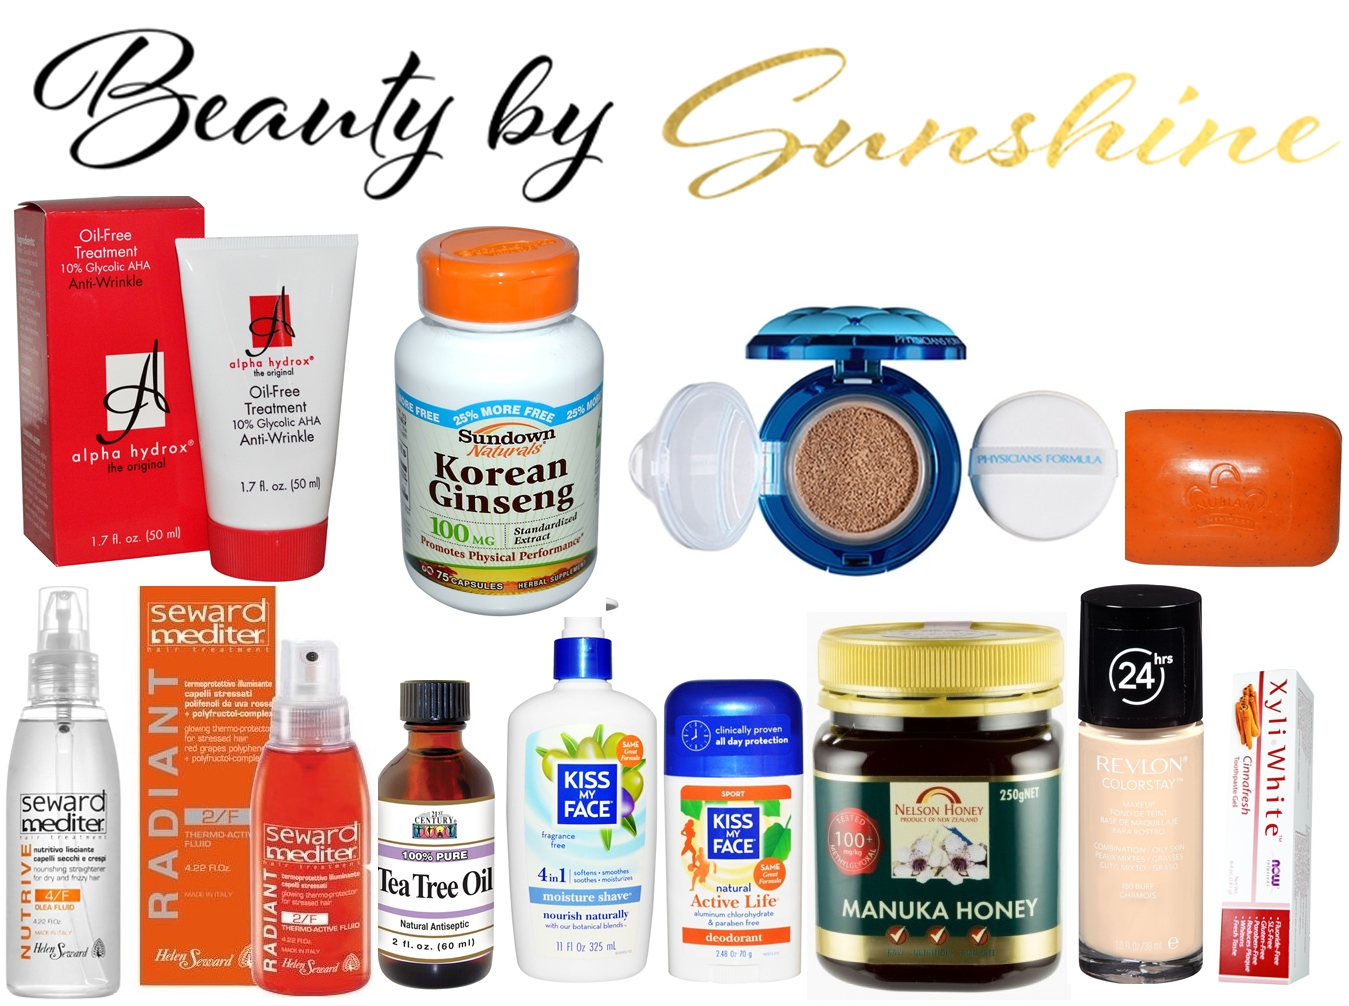 empties-beautybysunshinecom-cosmetice-part2